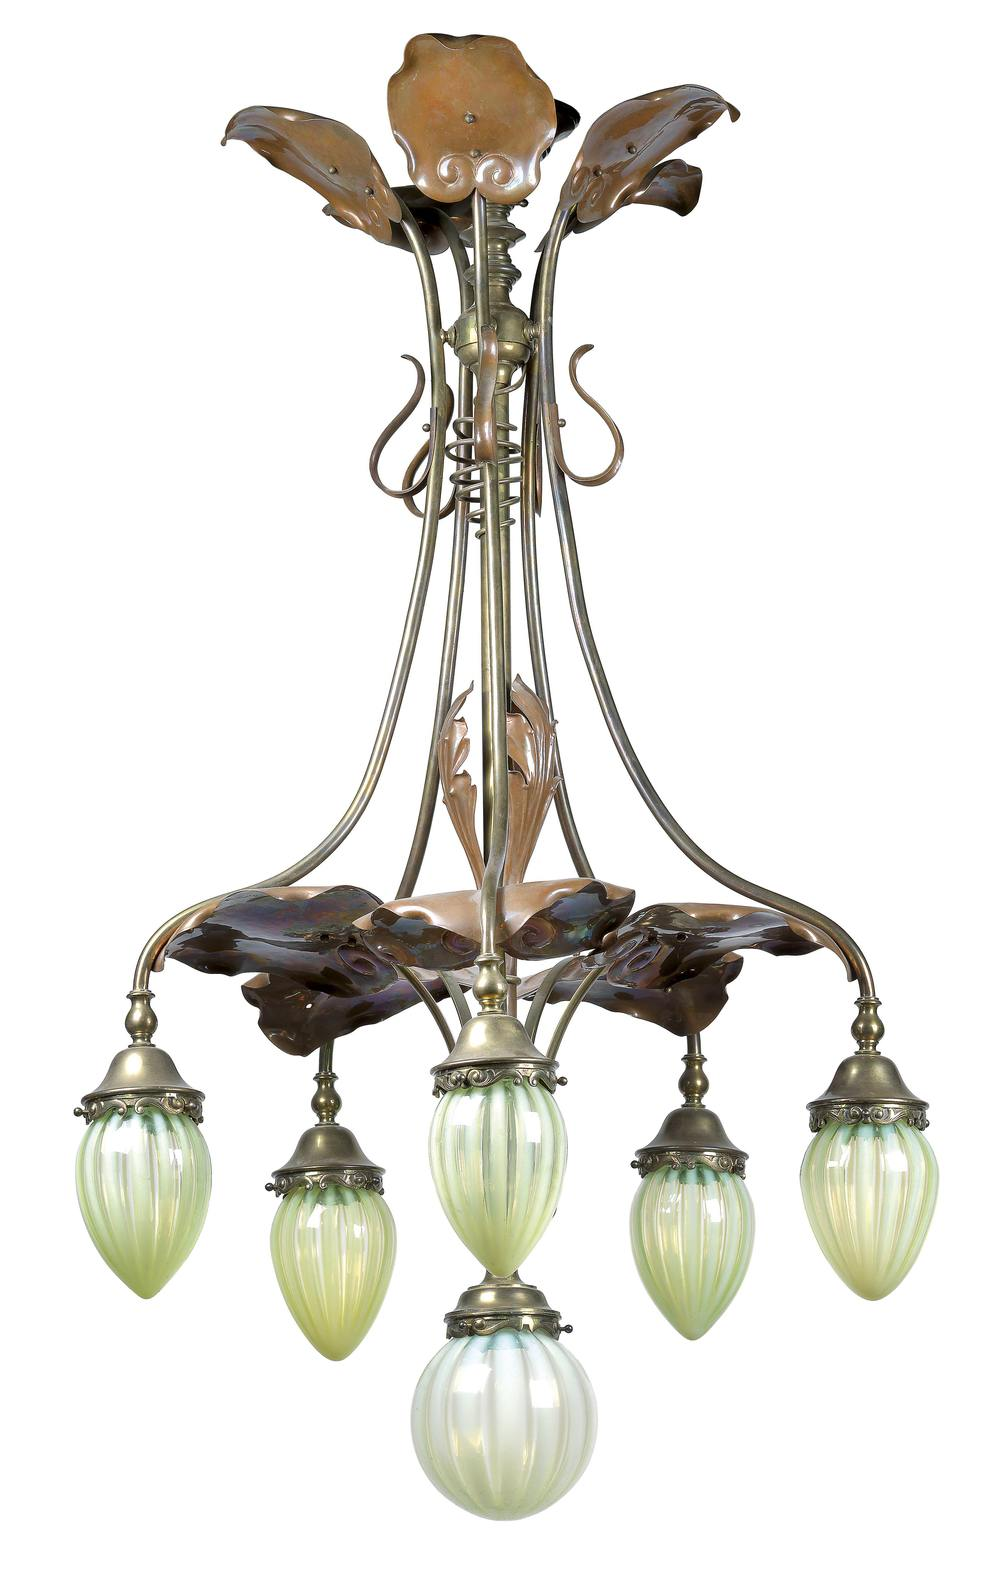 W.A.S Benson & Co. London, A Copper, Brass and Green Glass Chandelier, c.1900 Dorotheum Vienna